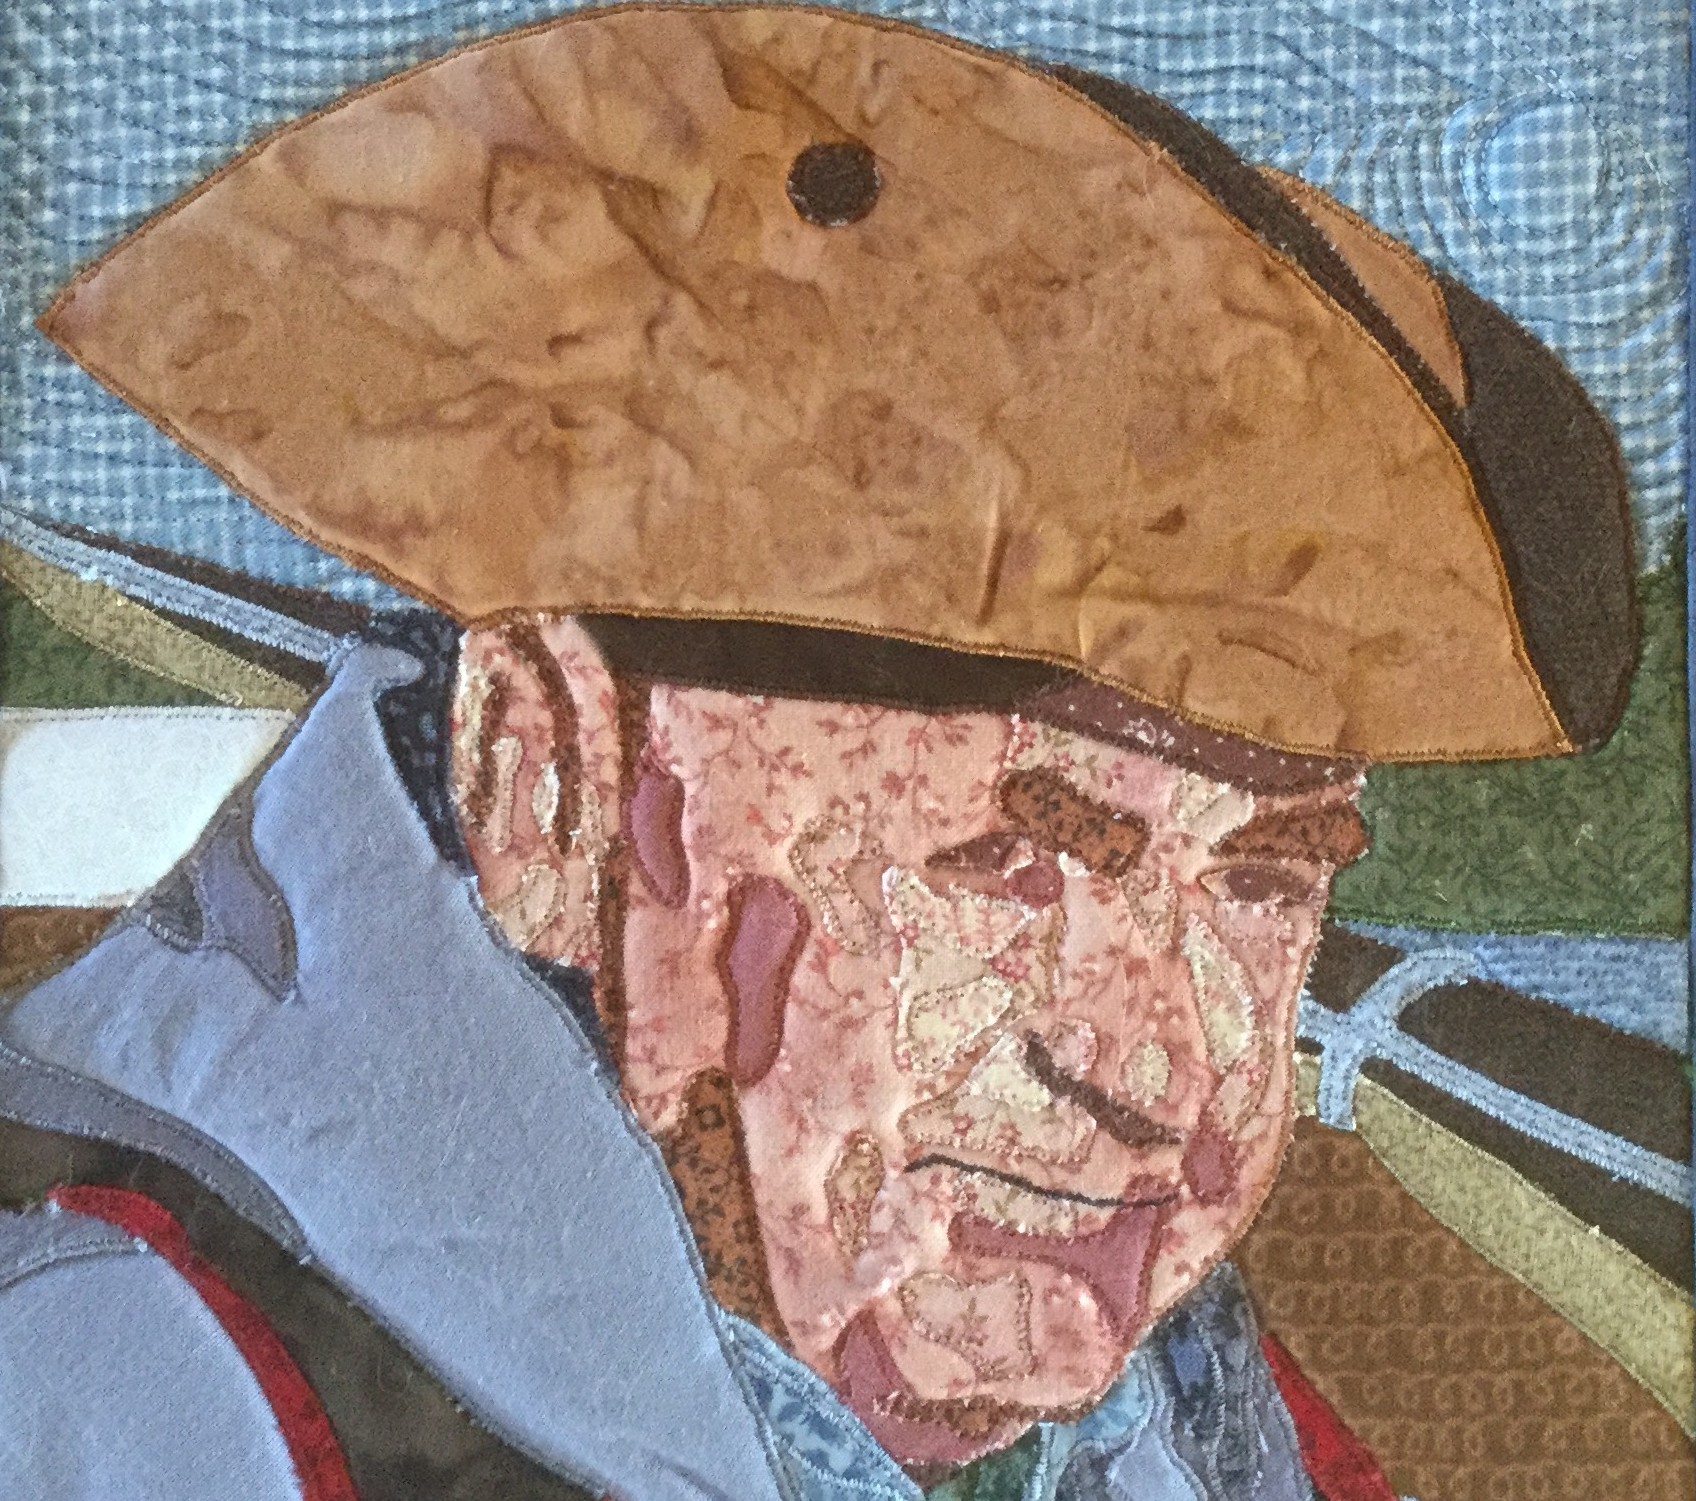 The late Pictou County artist, Susan Tilsley Manley, who died of cancer in 2016, created this marvelous quilt to profile her friend, Alexander MacKenzie.